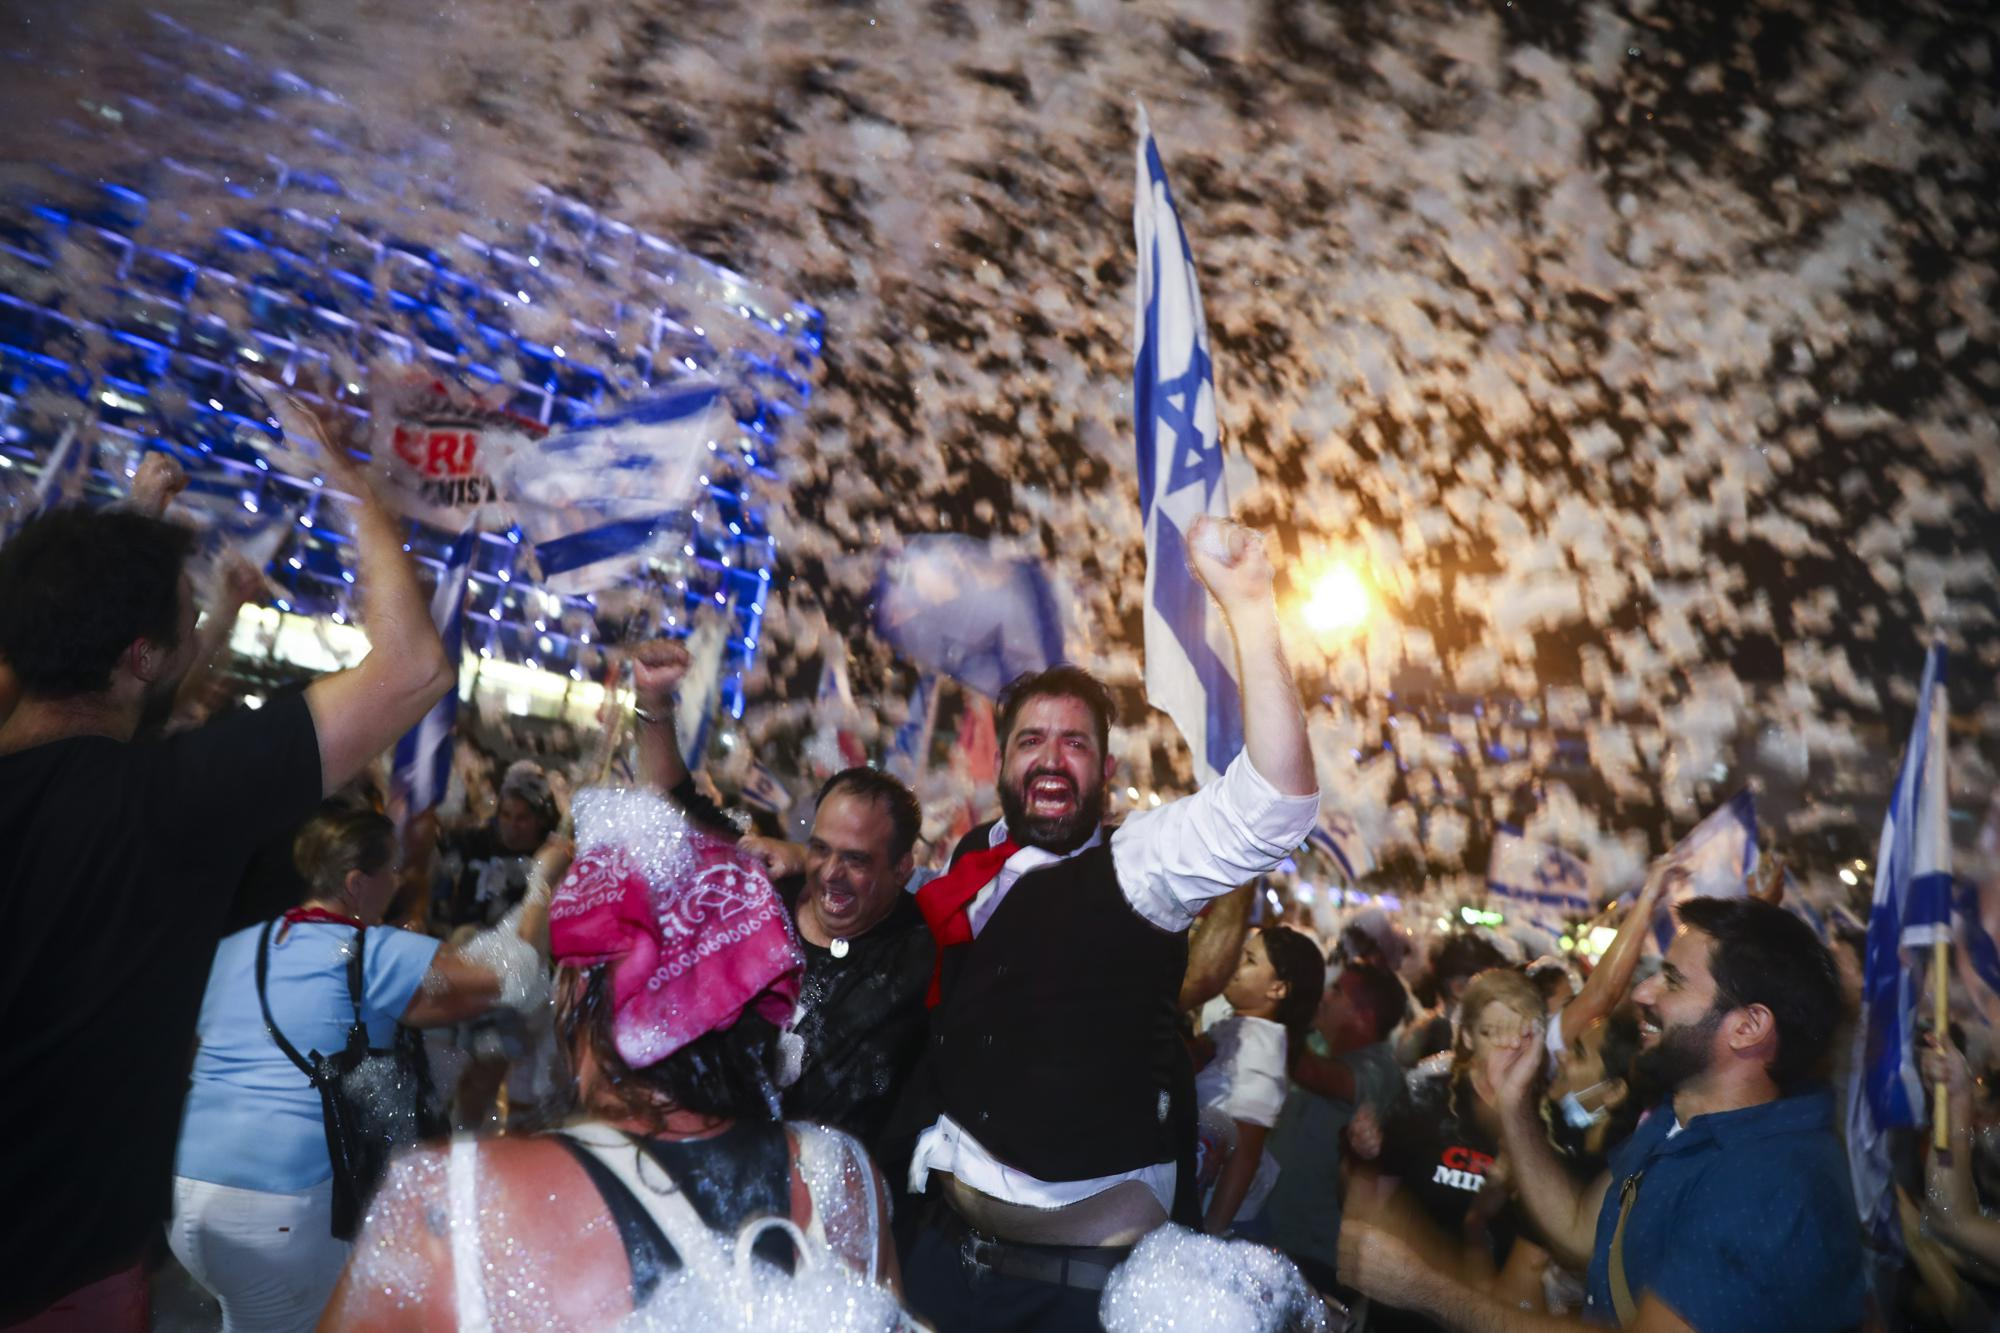 People celebrate the swearing-in of the new government in Tel Aviv, Israel, Sunday, June 13, 2021. Israel's parliament has voted in favor of a new coalition government, formally ending Prime Minister Benjamin Netanyahu's historic 12-year rule. Naftali Bennett, a former ally of Netanyahu, became the leader. (AP Photo/Oded Balilty)